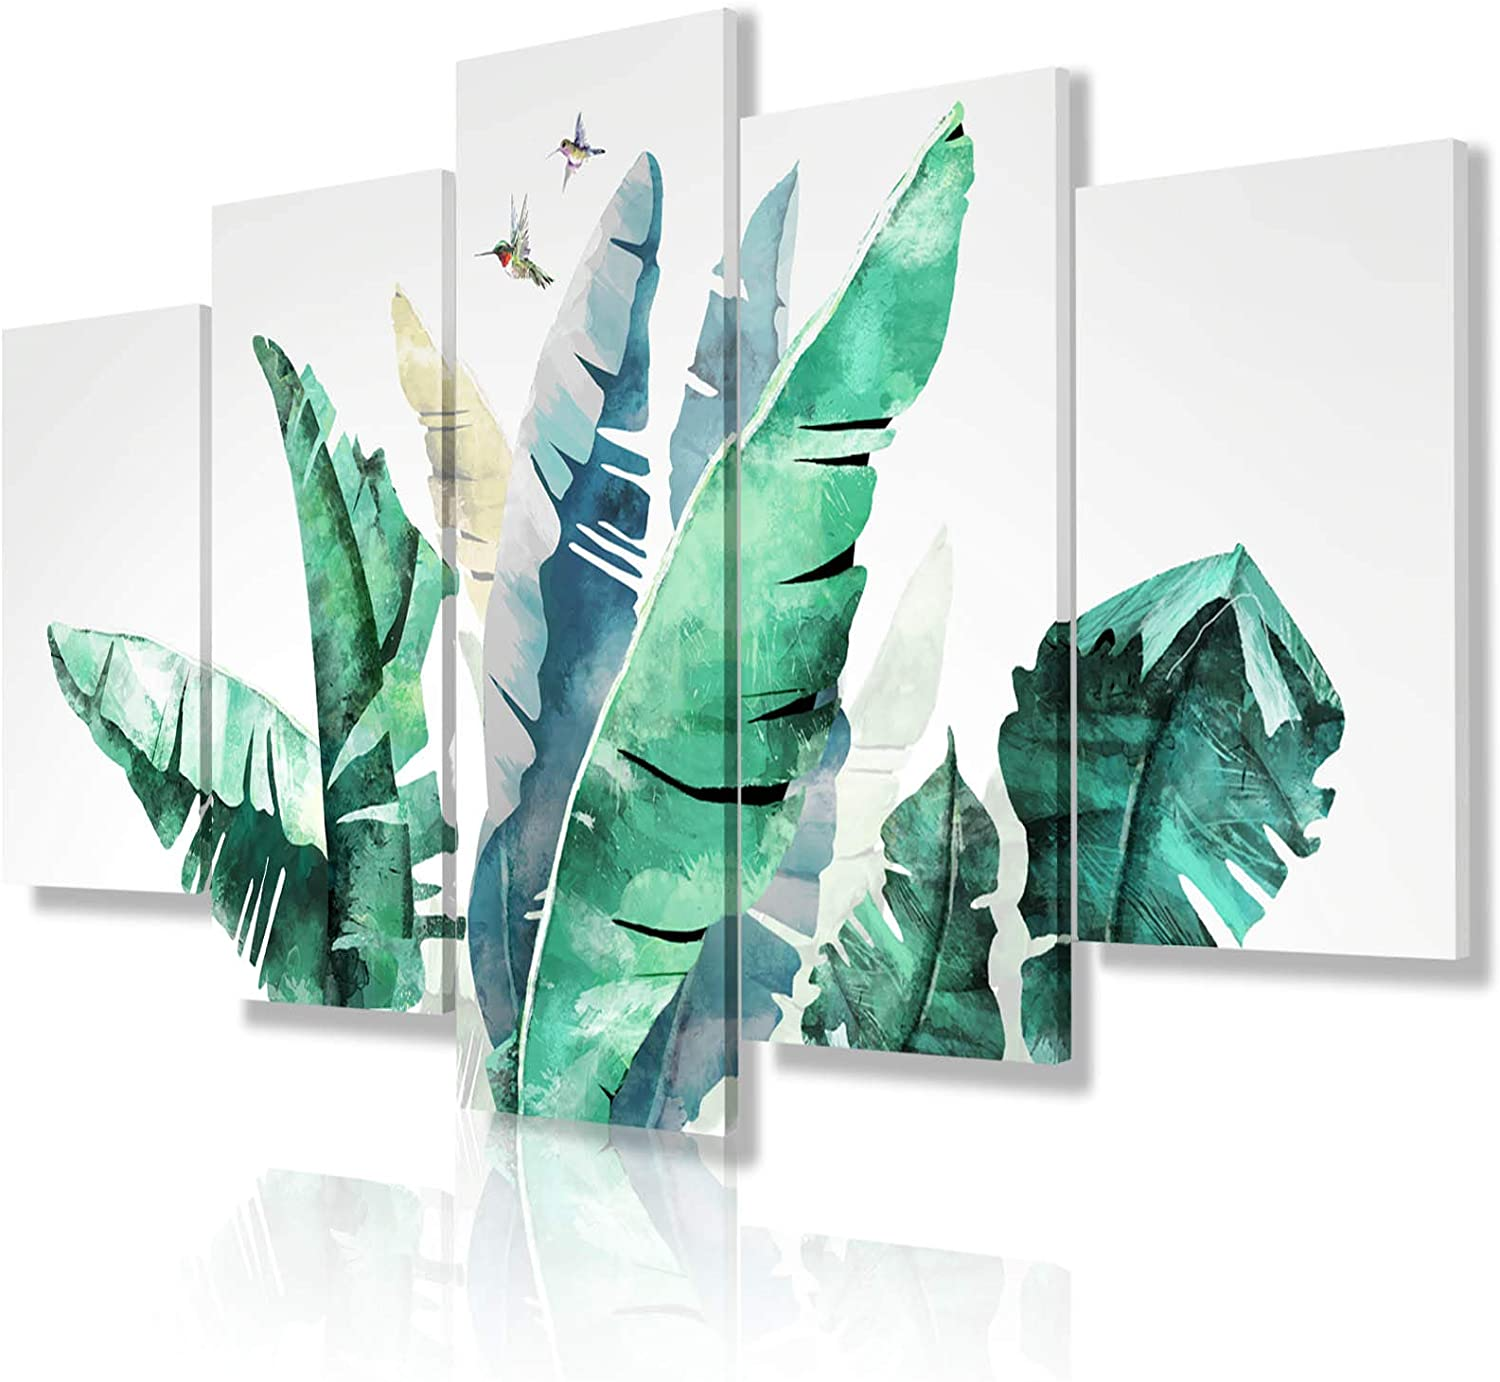 JIMHOMY –Framed 5 Pieces Canvas Print Wall Art, Plant Lucky Tree Artwork, Floral Wall Décor for Bedroom, Office and Hotel Ready to Hang